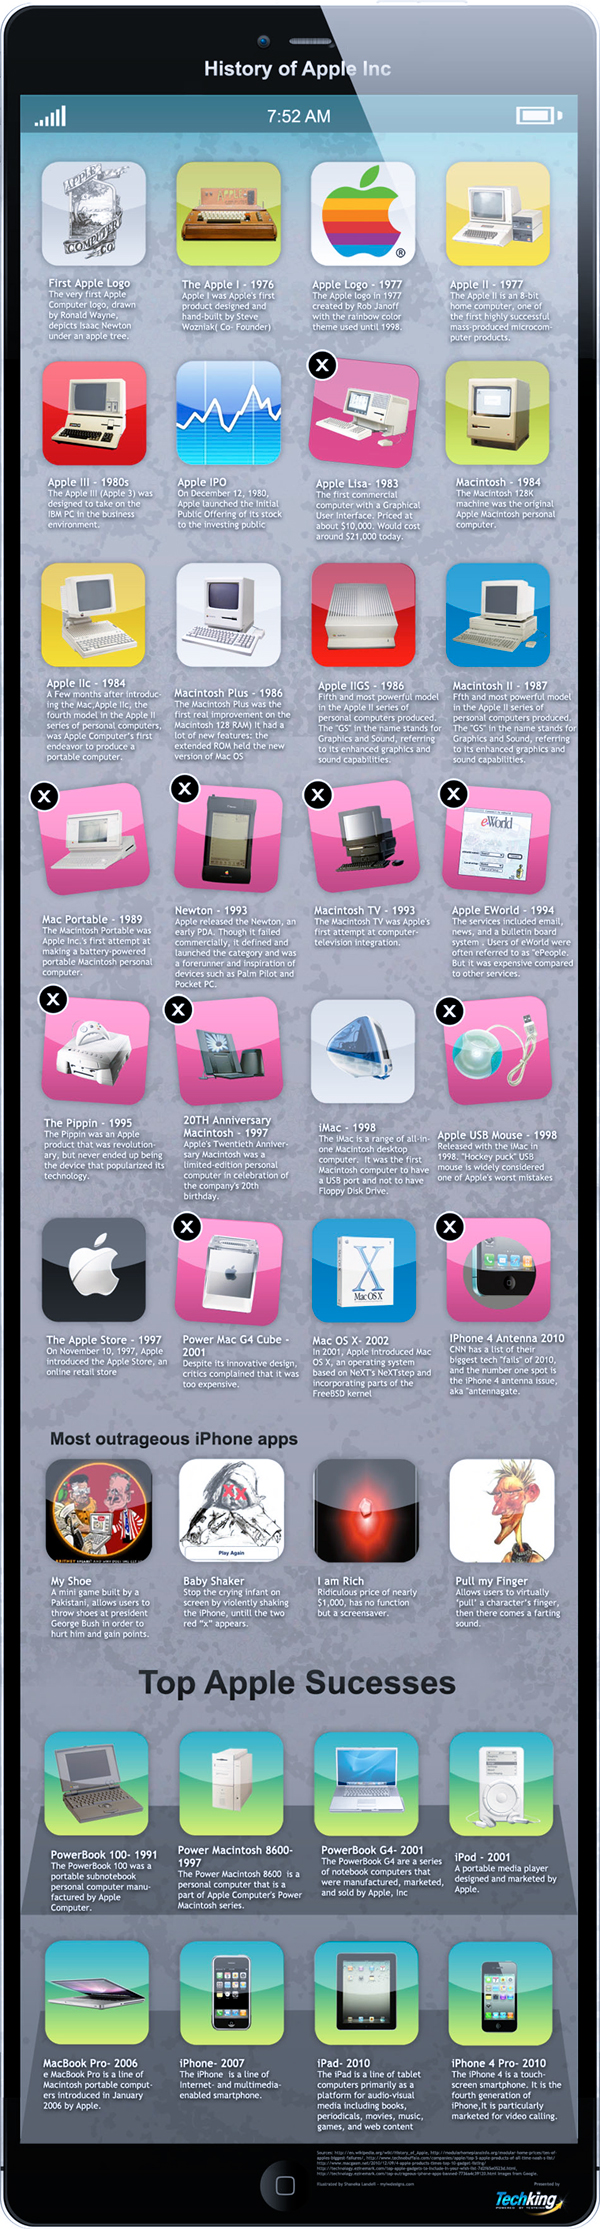 History of Apple, Inc.  - Infographic